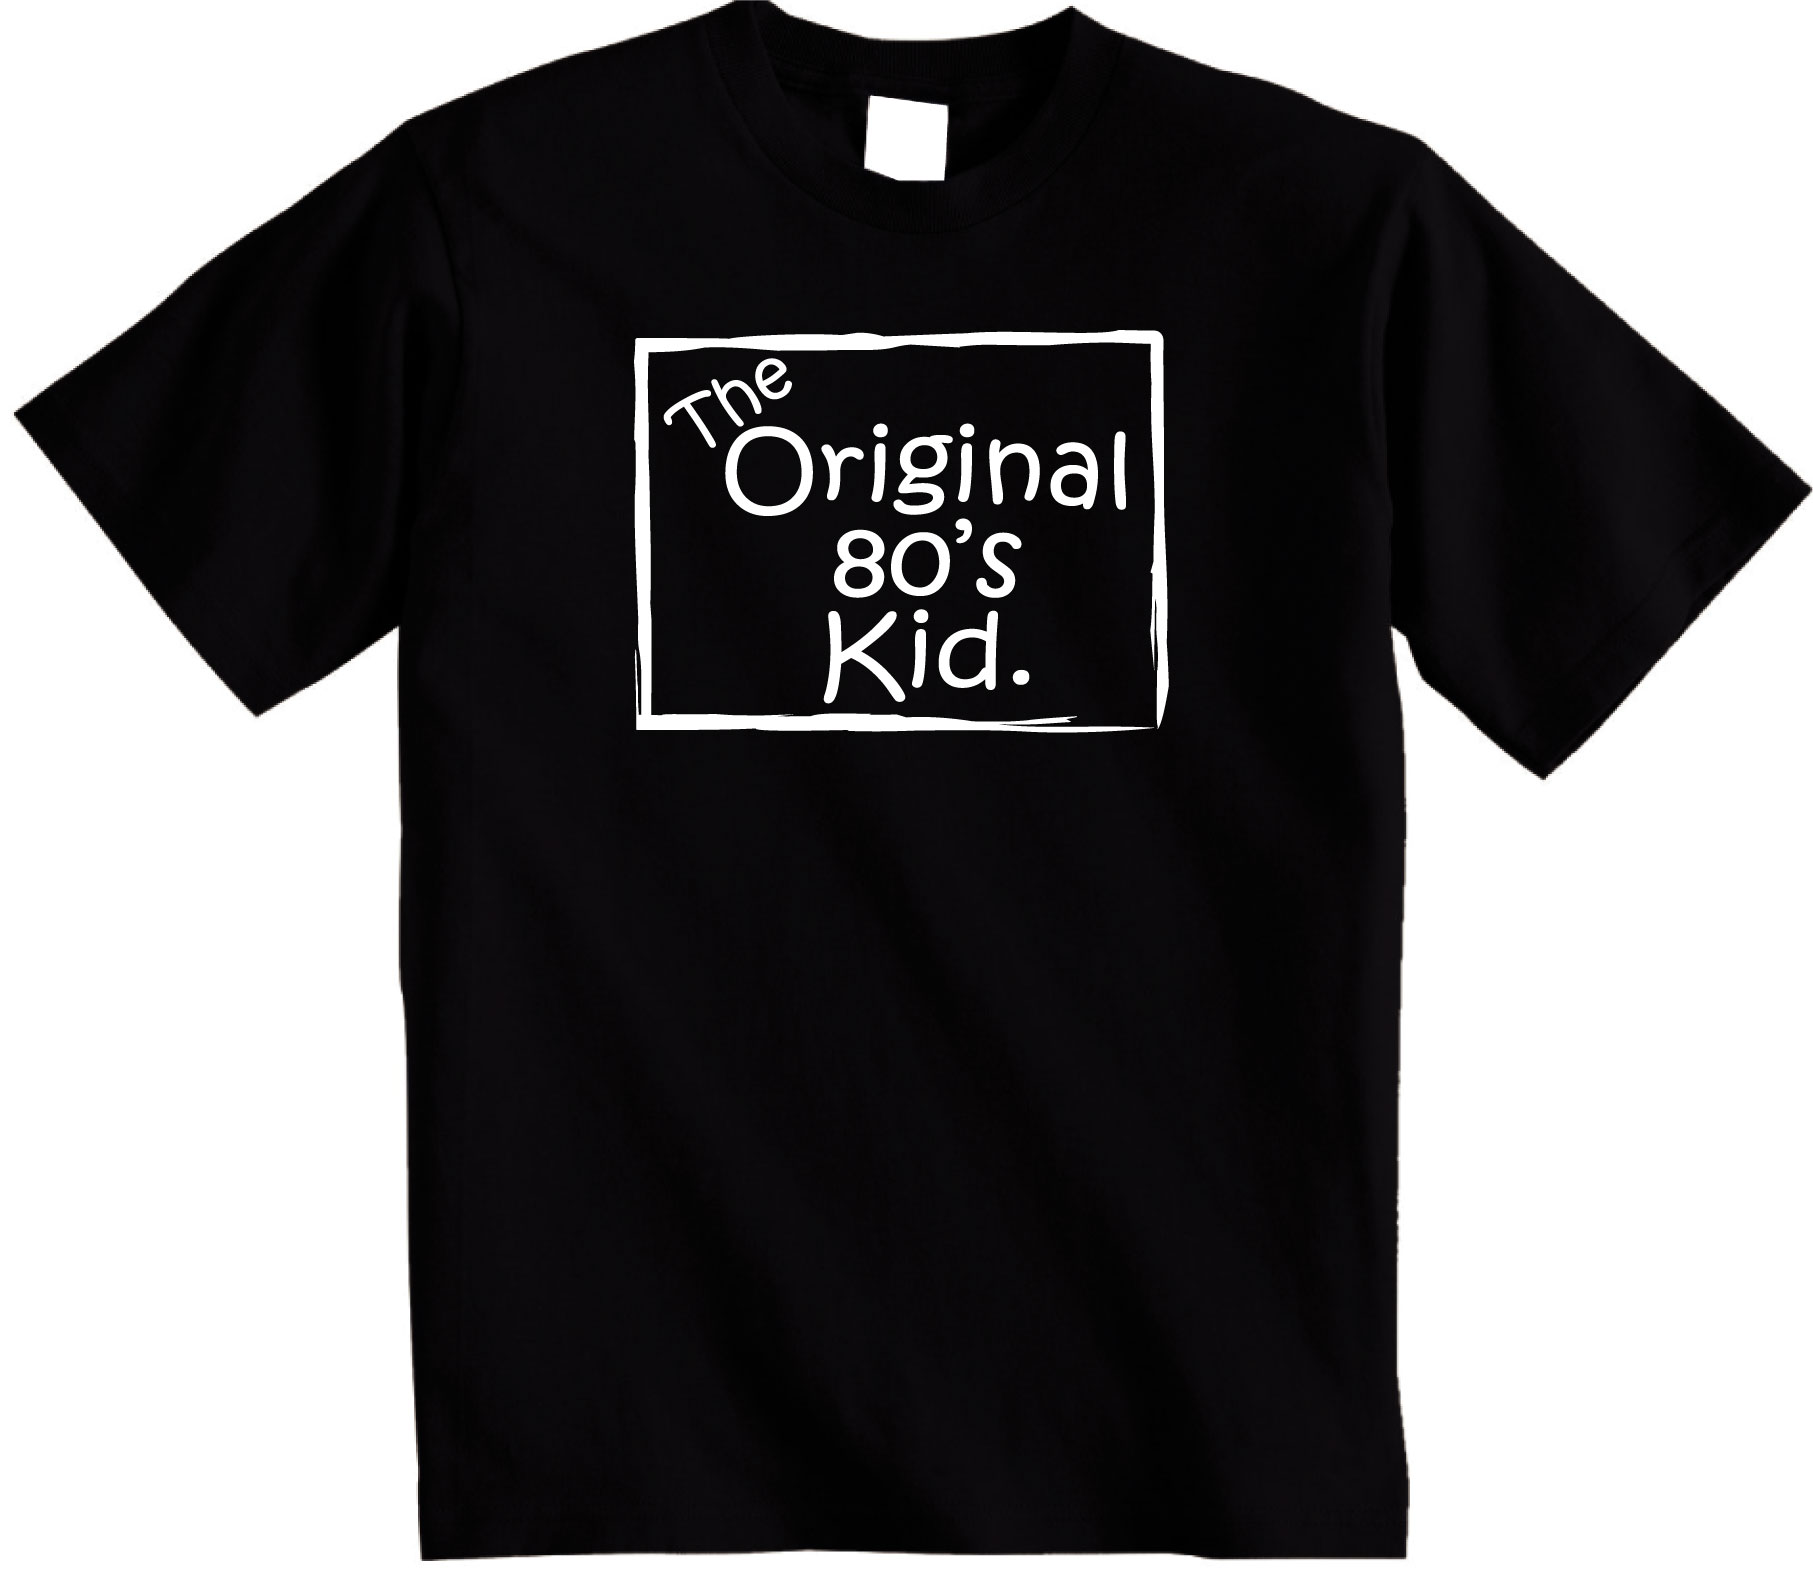 The Original 80's Kid t shirt Perfect Gift or Persent